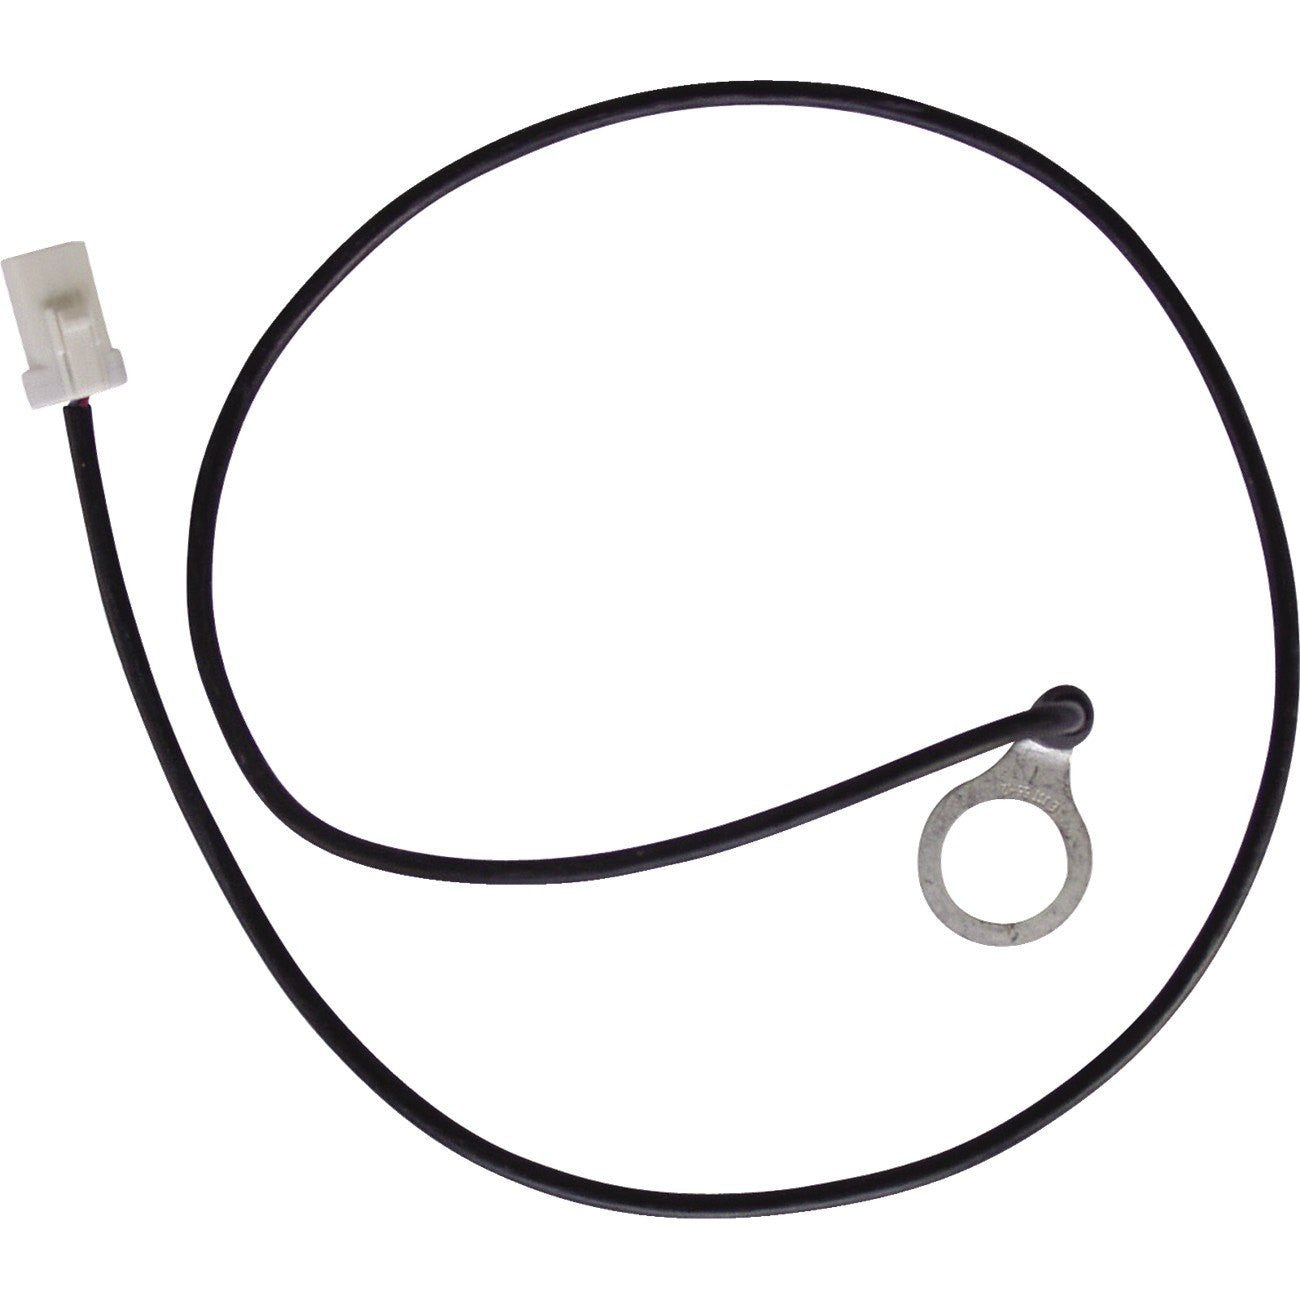 Trailtech Replacement Spark Plug Ring - ScooterSwapShop